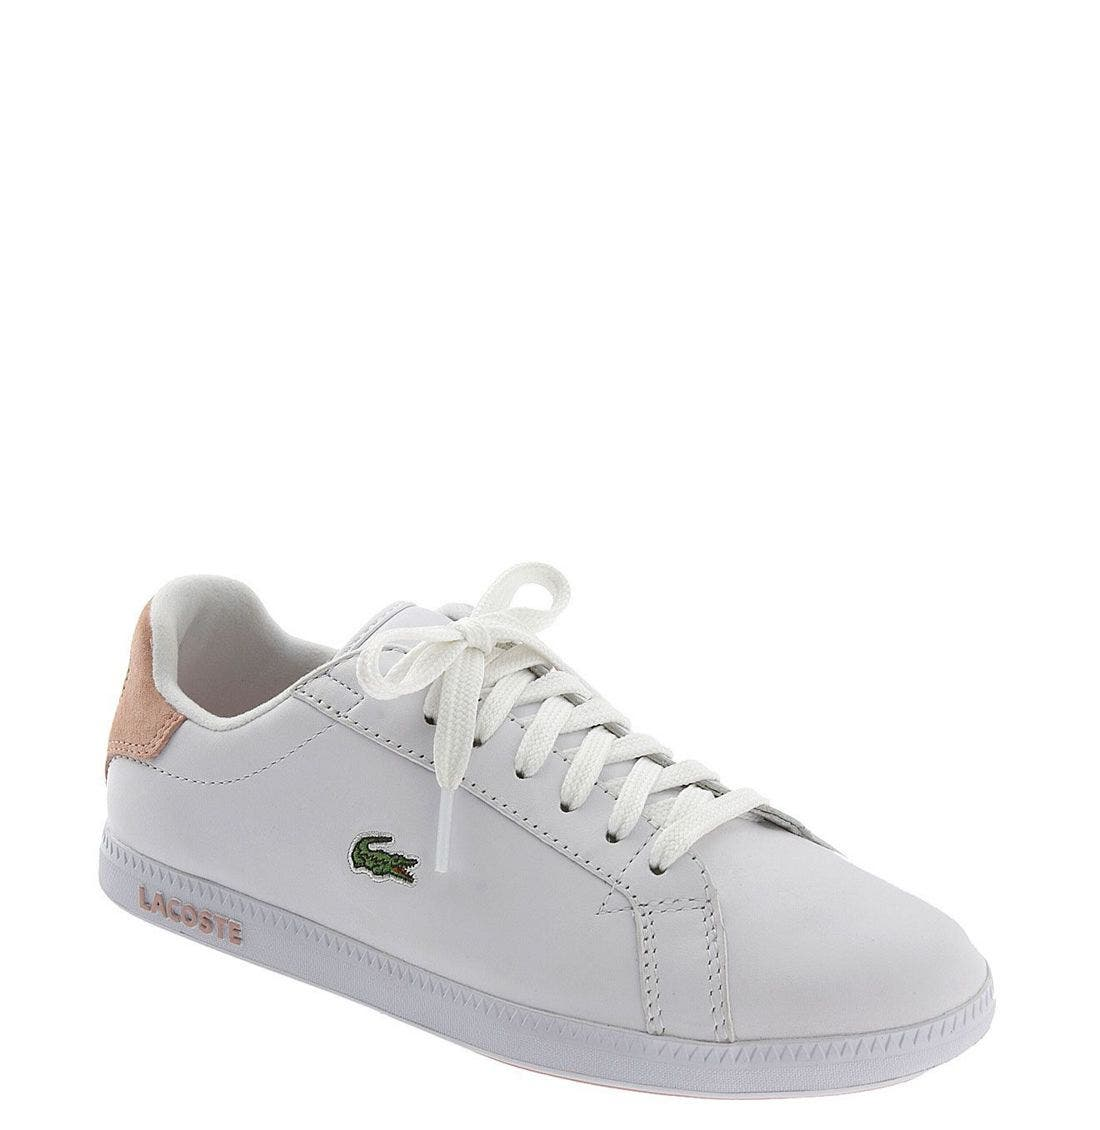 Alternate Image 1 Selected - Lacoste 'Graduate 2' Sneaker (Women)